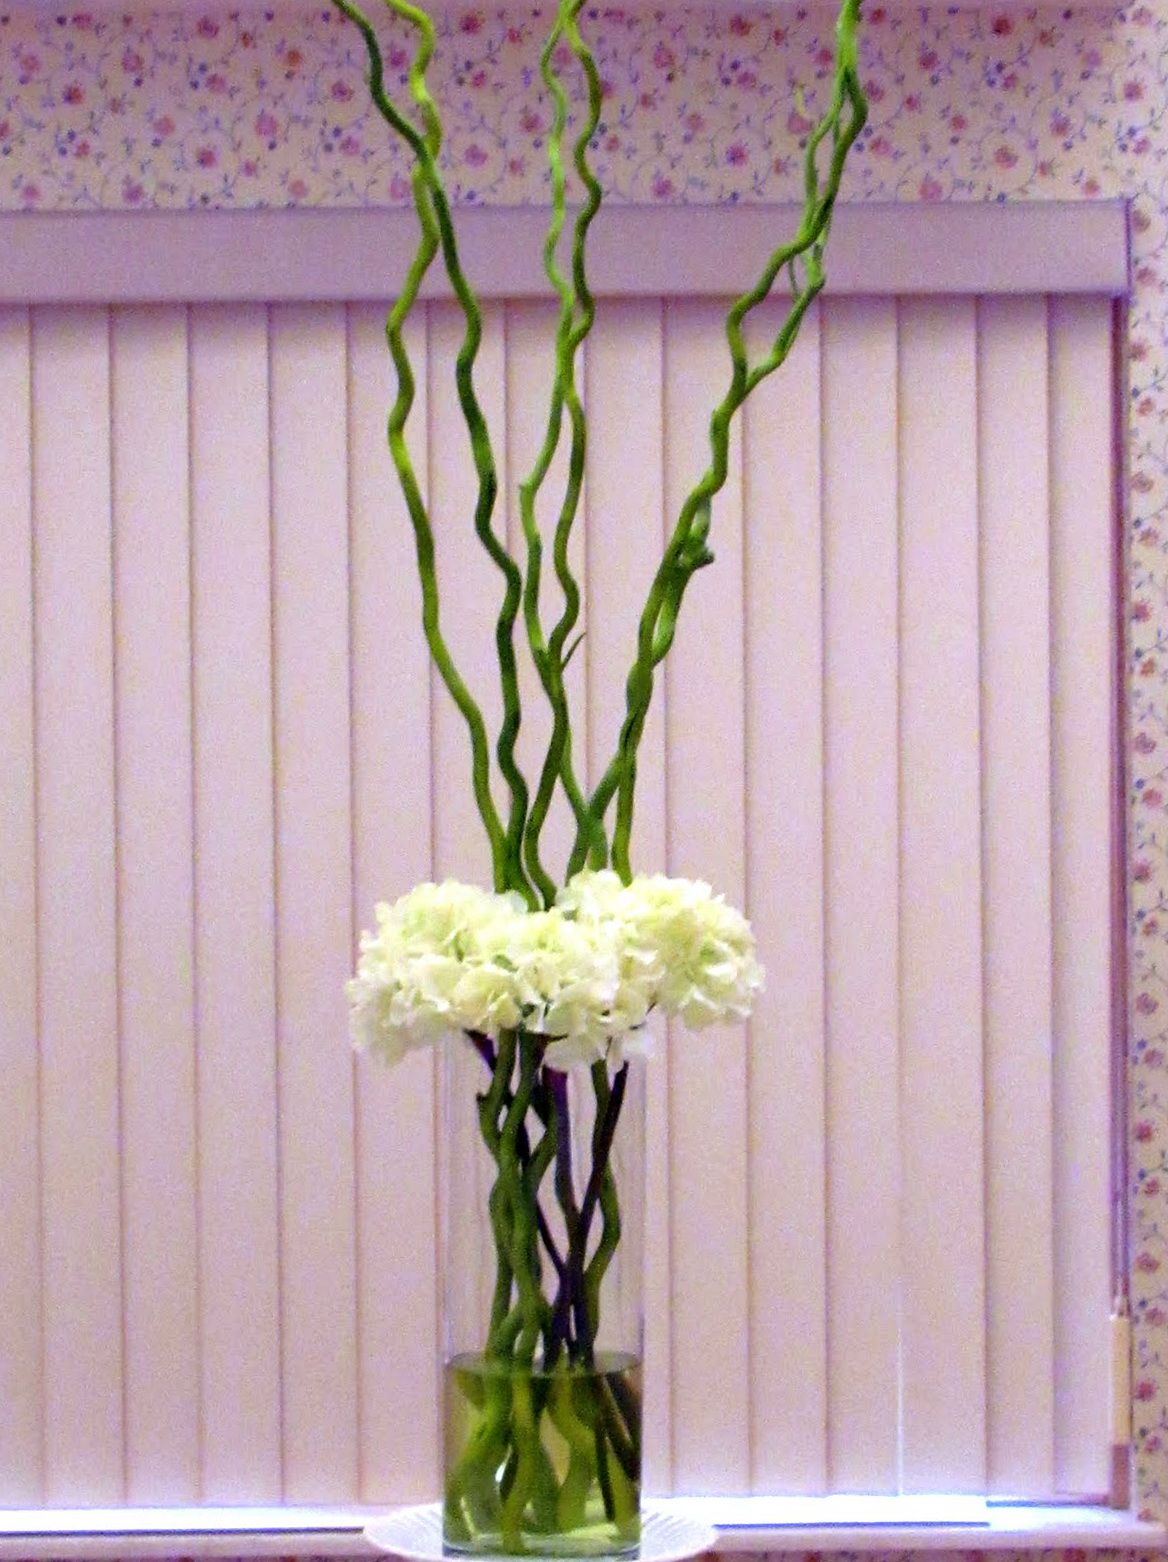 Clear glass vase decoration ideas do you assume clear glass vase clear glass vase decoration ideas do you assume clear glass vase decoration ideas appears to reviewsmspy